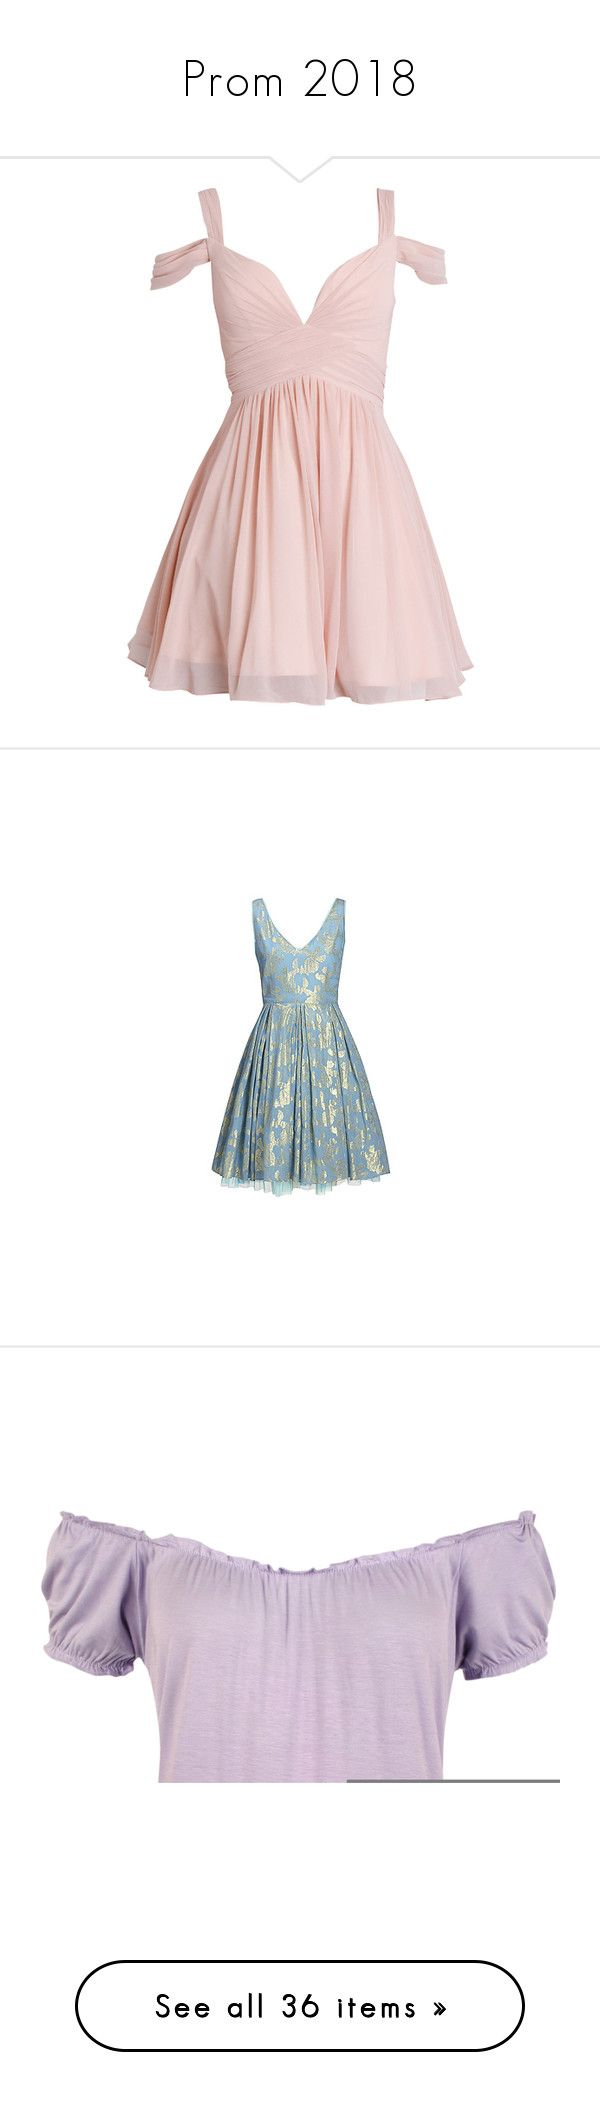 """""""Prom 2018"""" by littlemixer4 ❤ liked on Polyvore featuring dresses, vestidos, short dresses, pink, chiffon prom dresses, short prom dresses, white chiffon dresses, pink chiffon dress, white dresses and blue"""